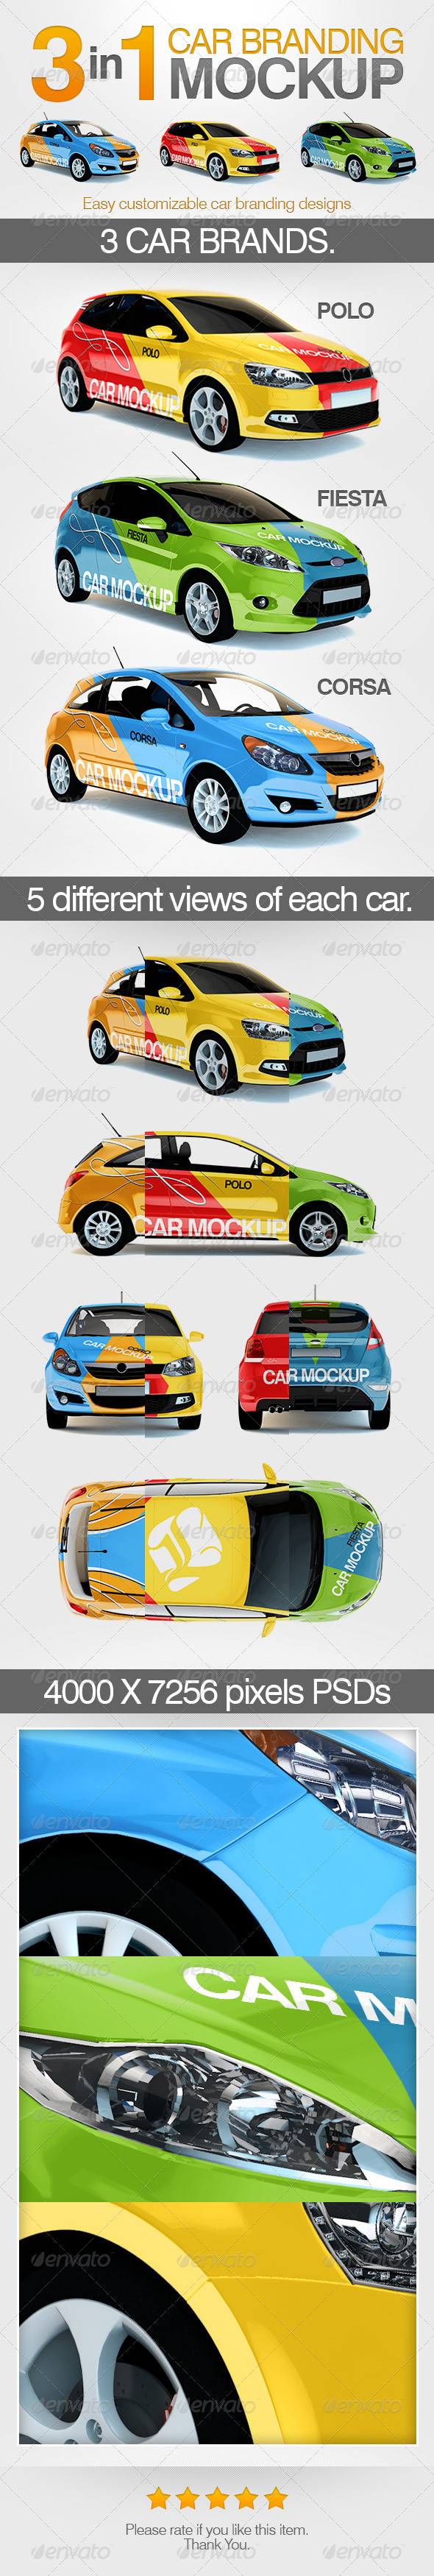 GraphicRiver 3in1 Car Branding Mock Up 5849901